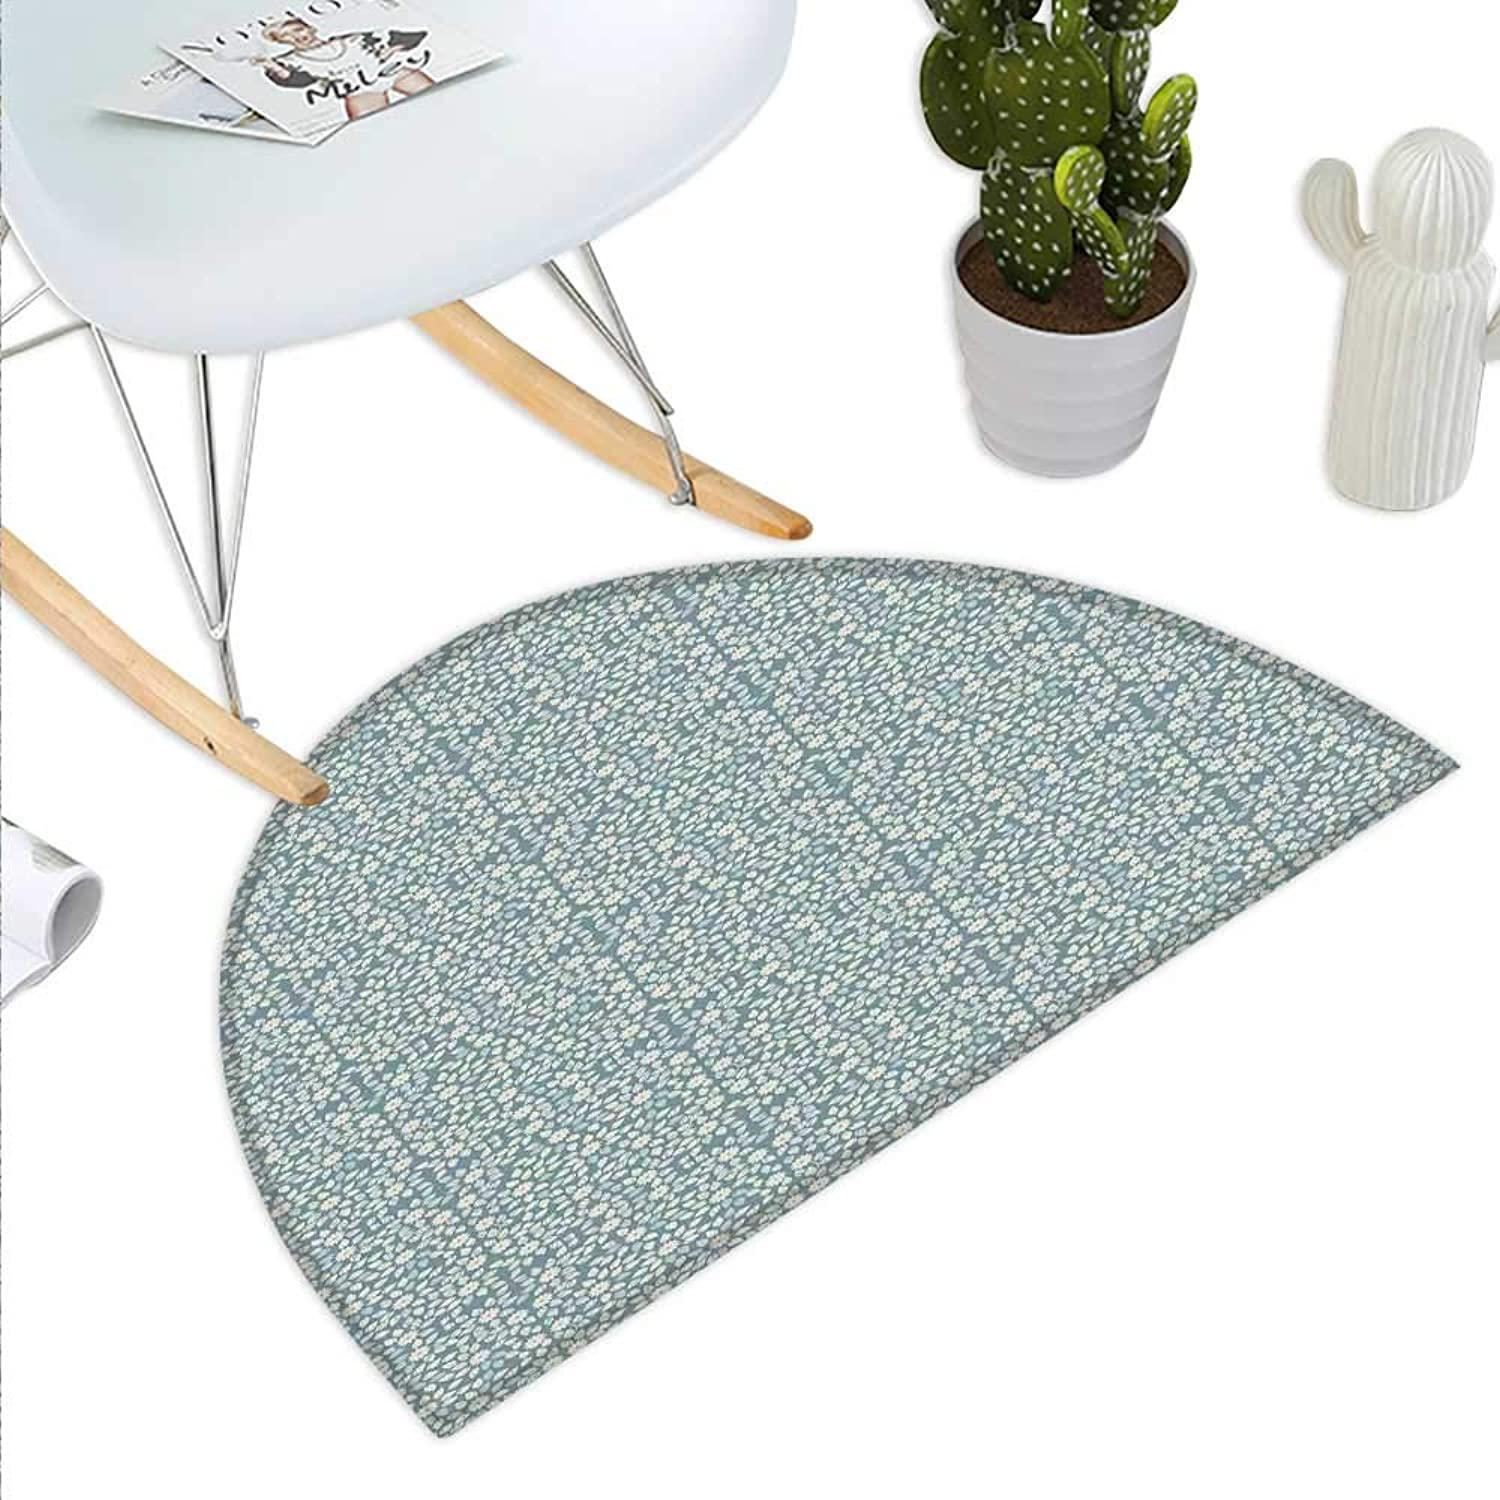 Ivory and bluee Semicircle Doormat Blooming Petals Leaves Silhouette of Abstract Flowers Nature Growth Halfmoon doormats H 27.5  xD 41.3  Ivory Slate bluee